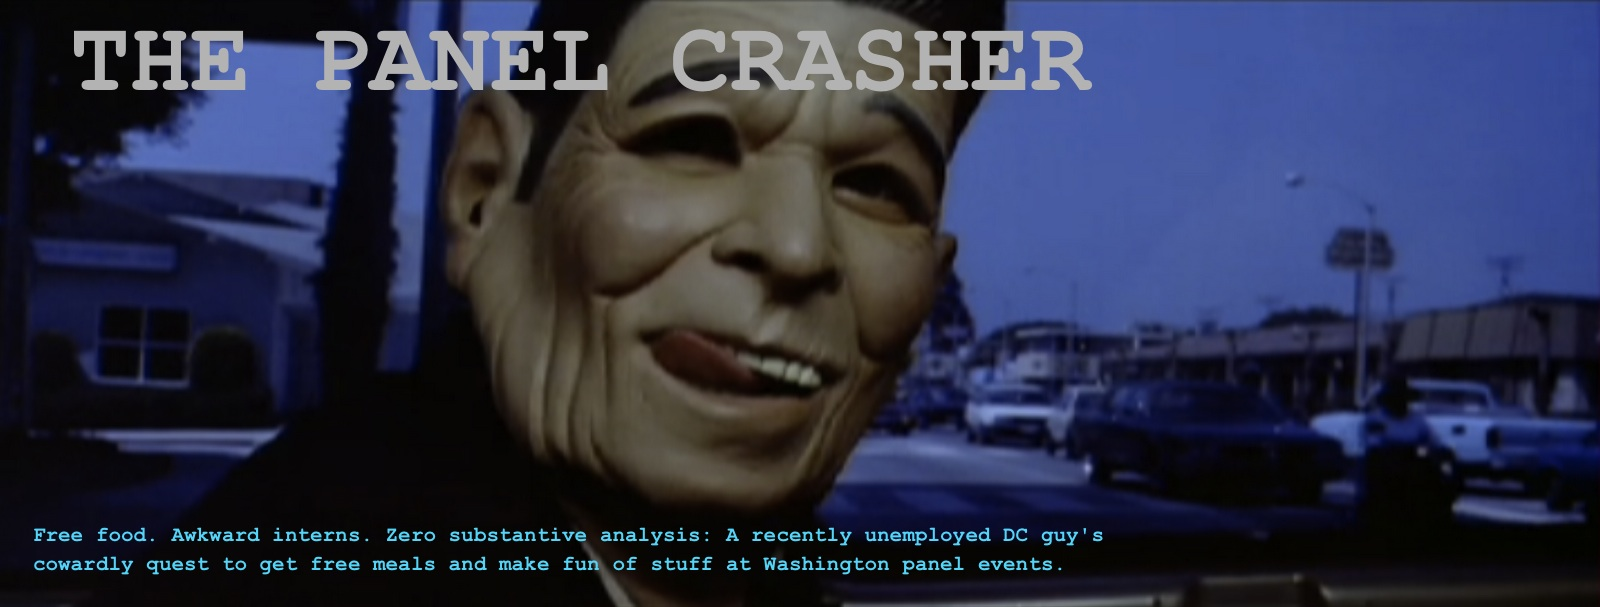 THE PANEL CRASHER